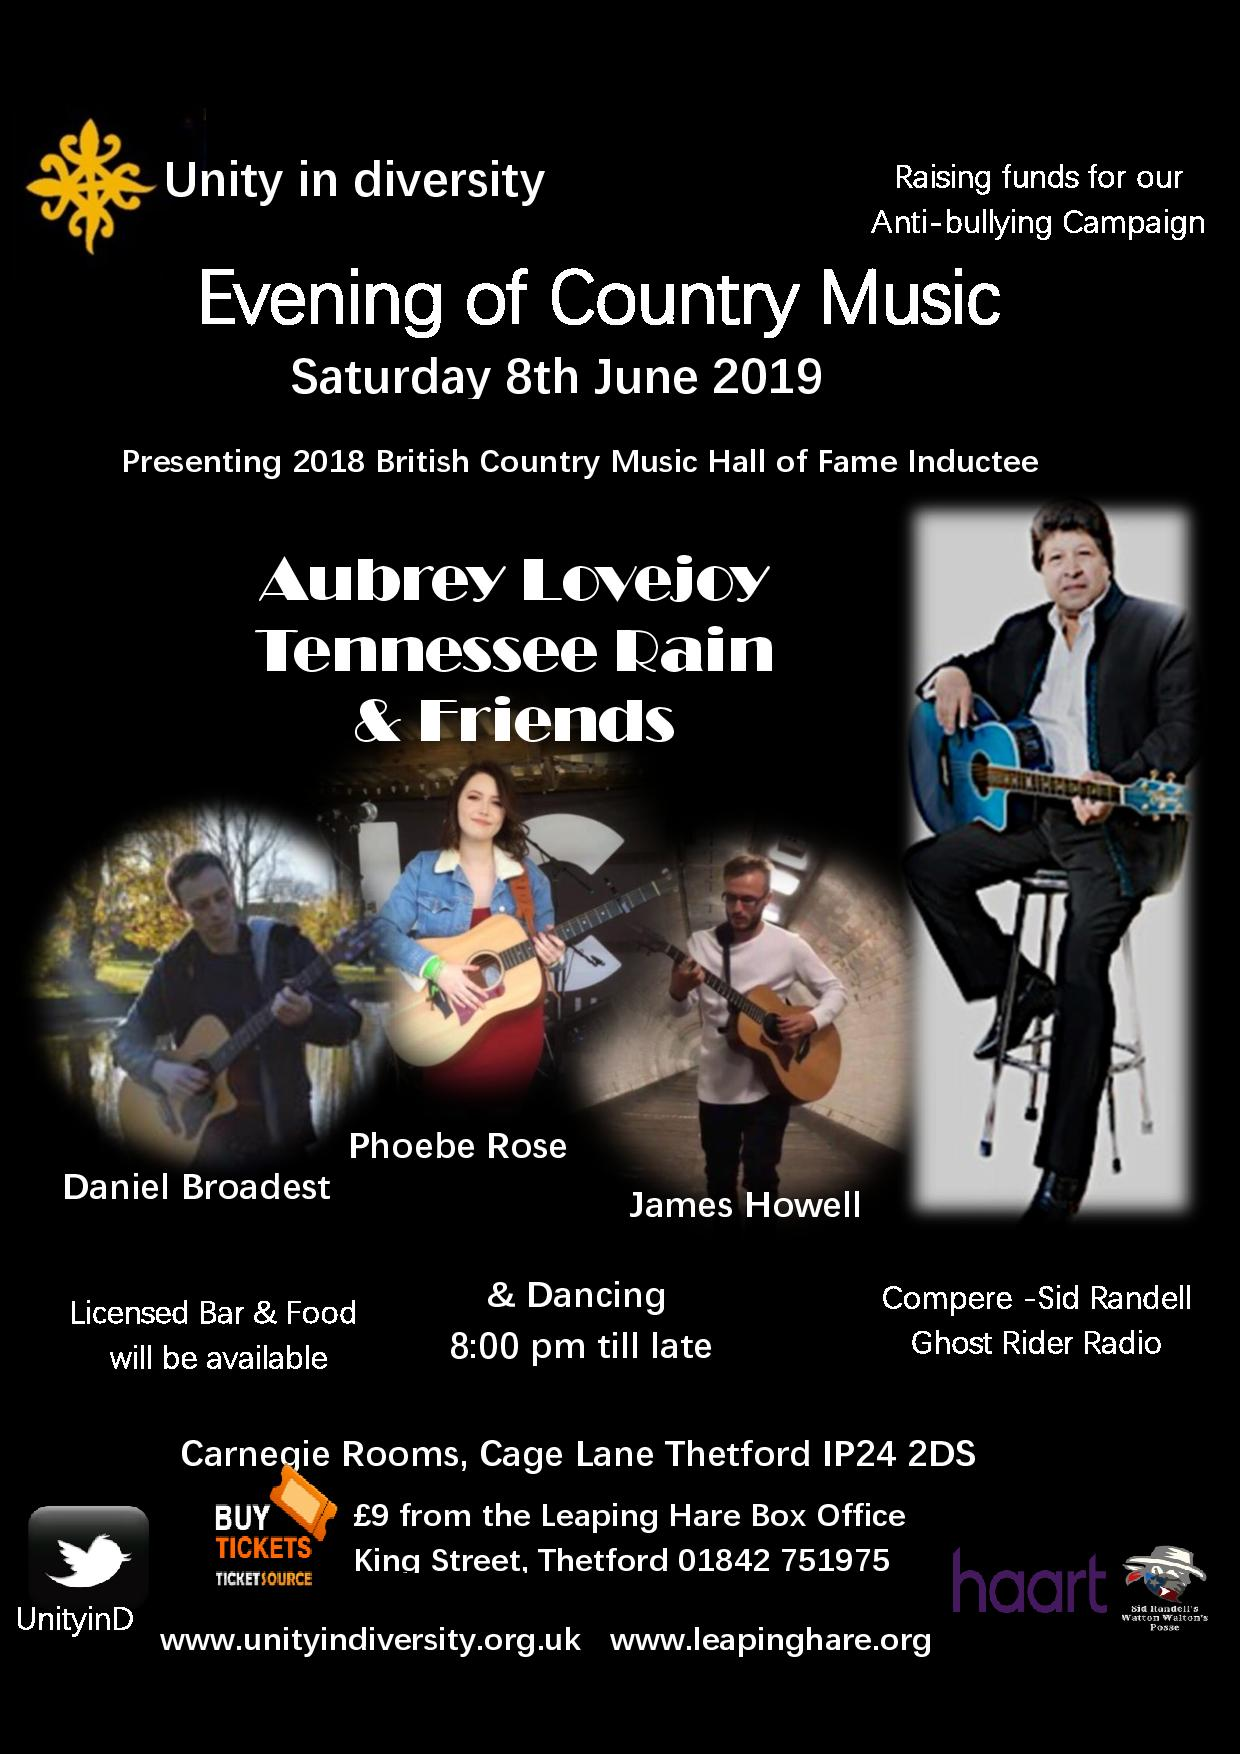 Evening of Country Music banner image